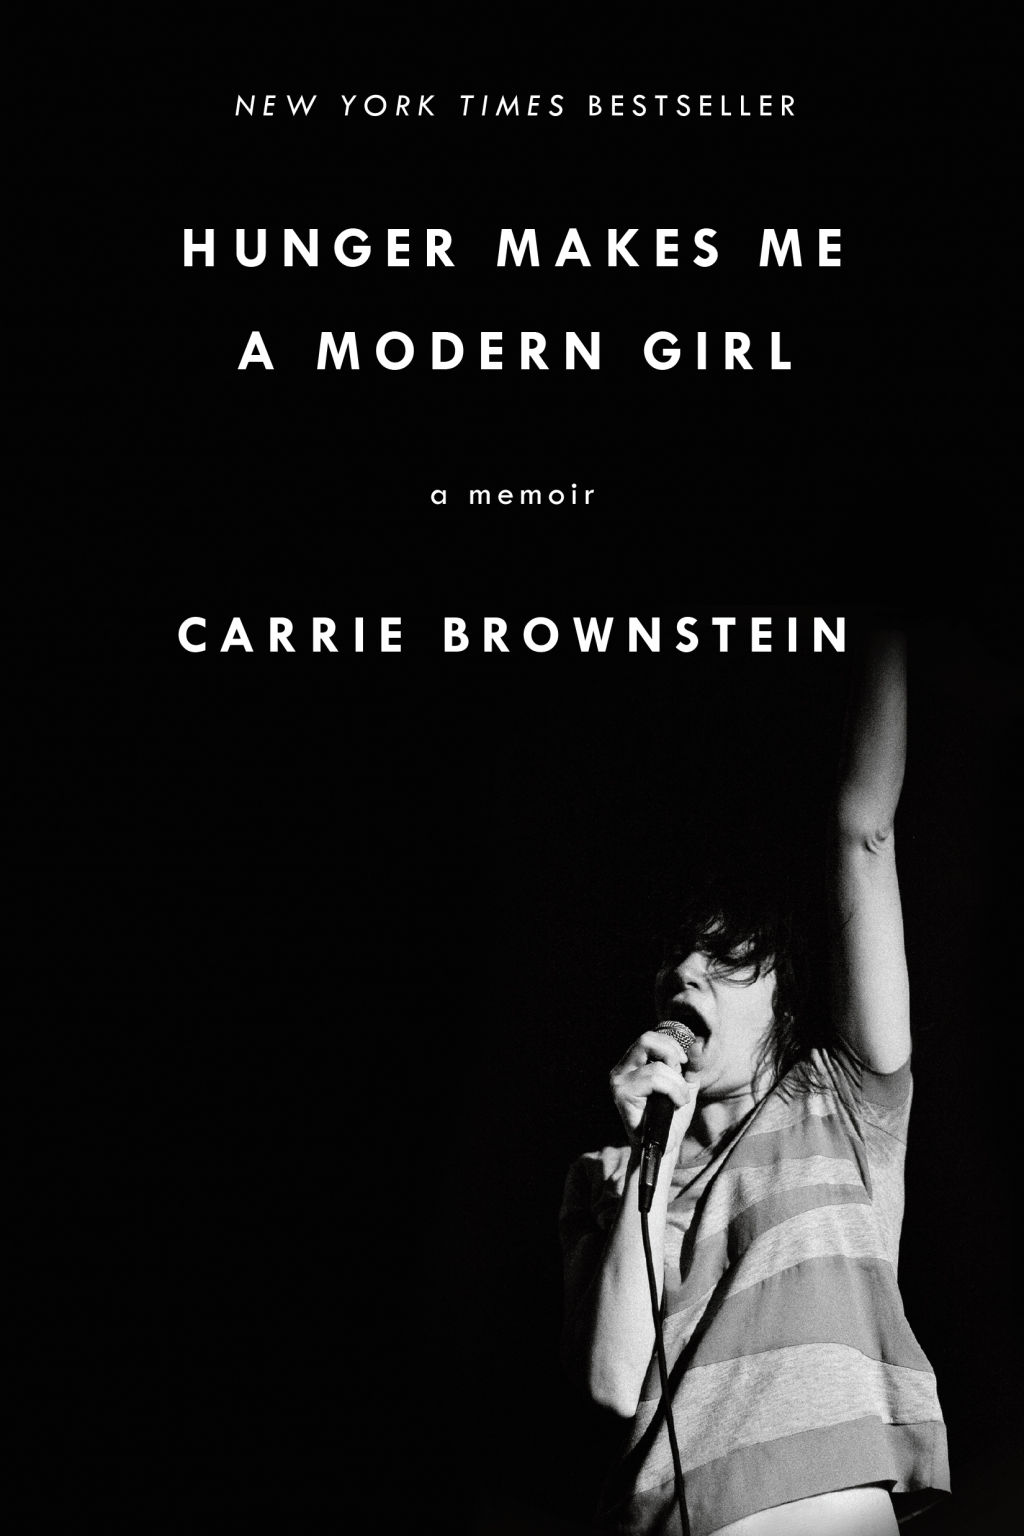 Hunger makes me a modern girl by Carrie Brownstein.